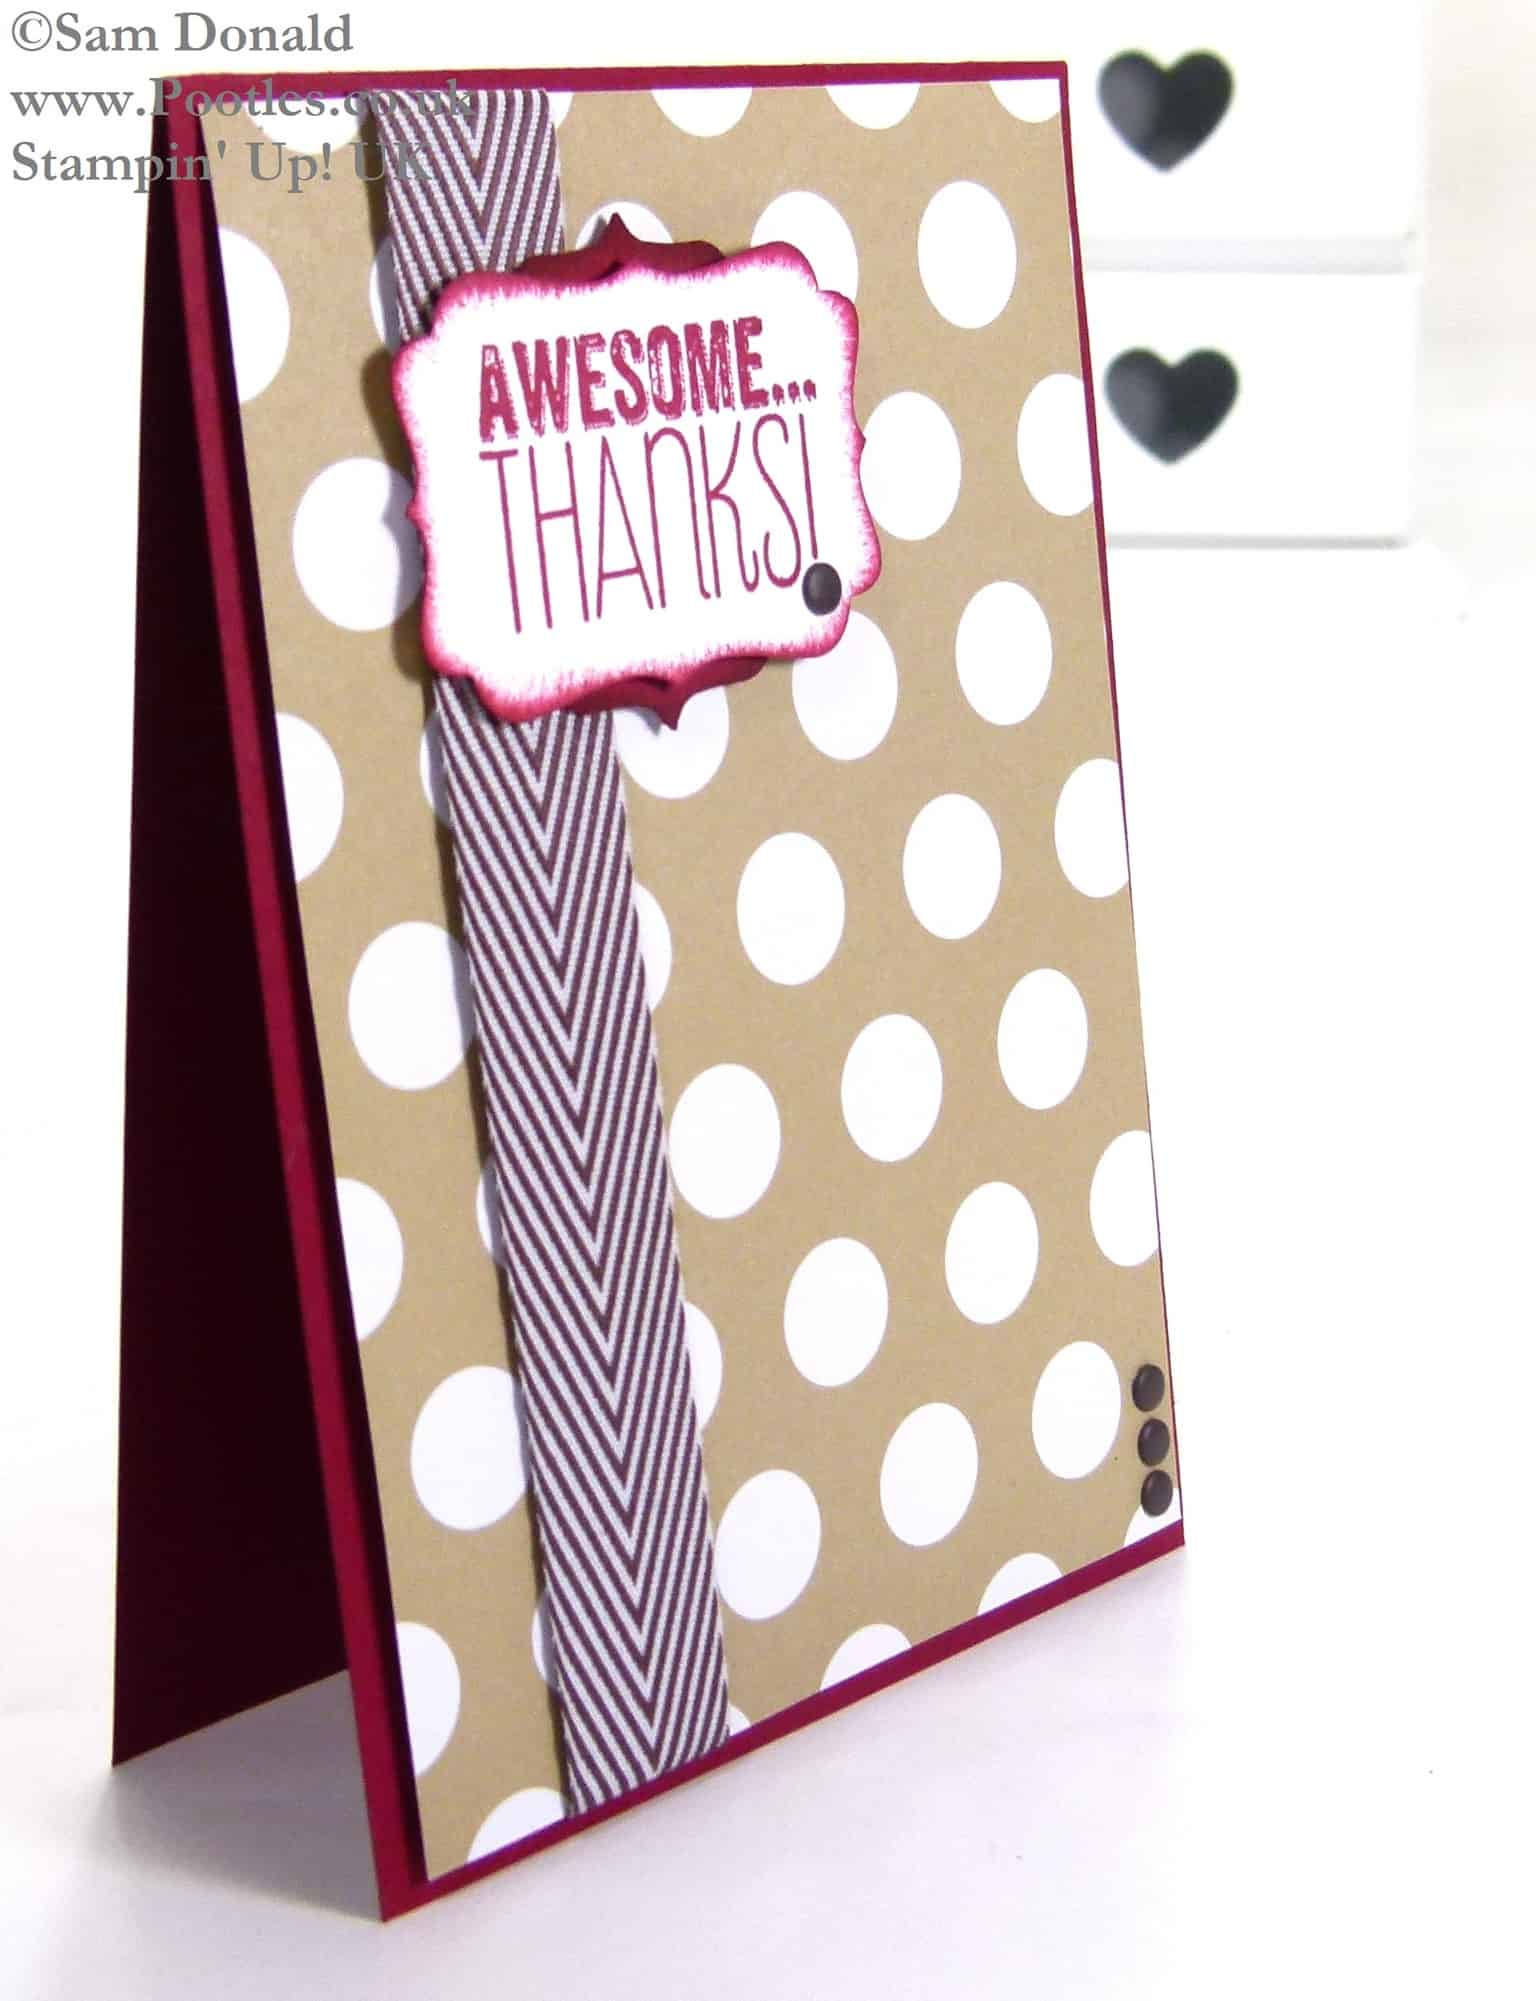 POOTLES Stampin Up UK Awesome Thanks Chocolate Crumb Card 2